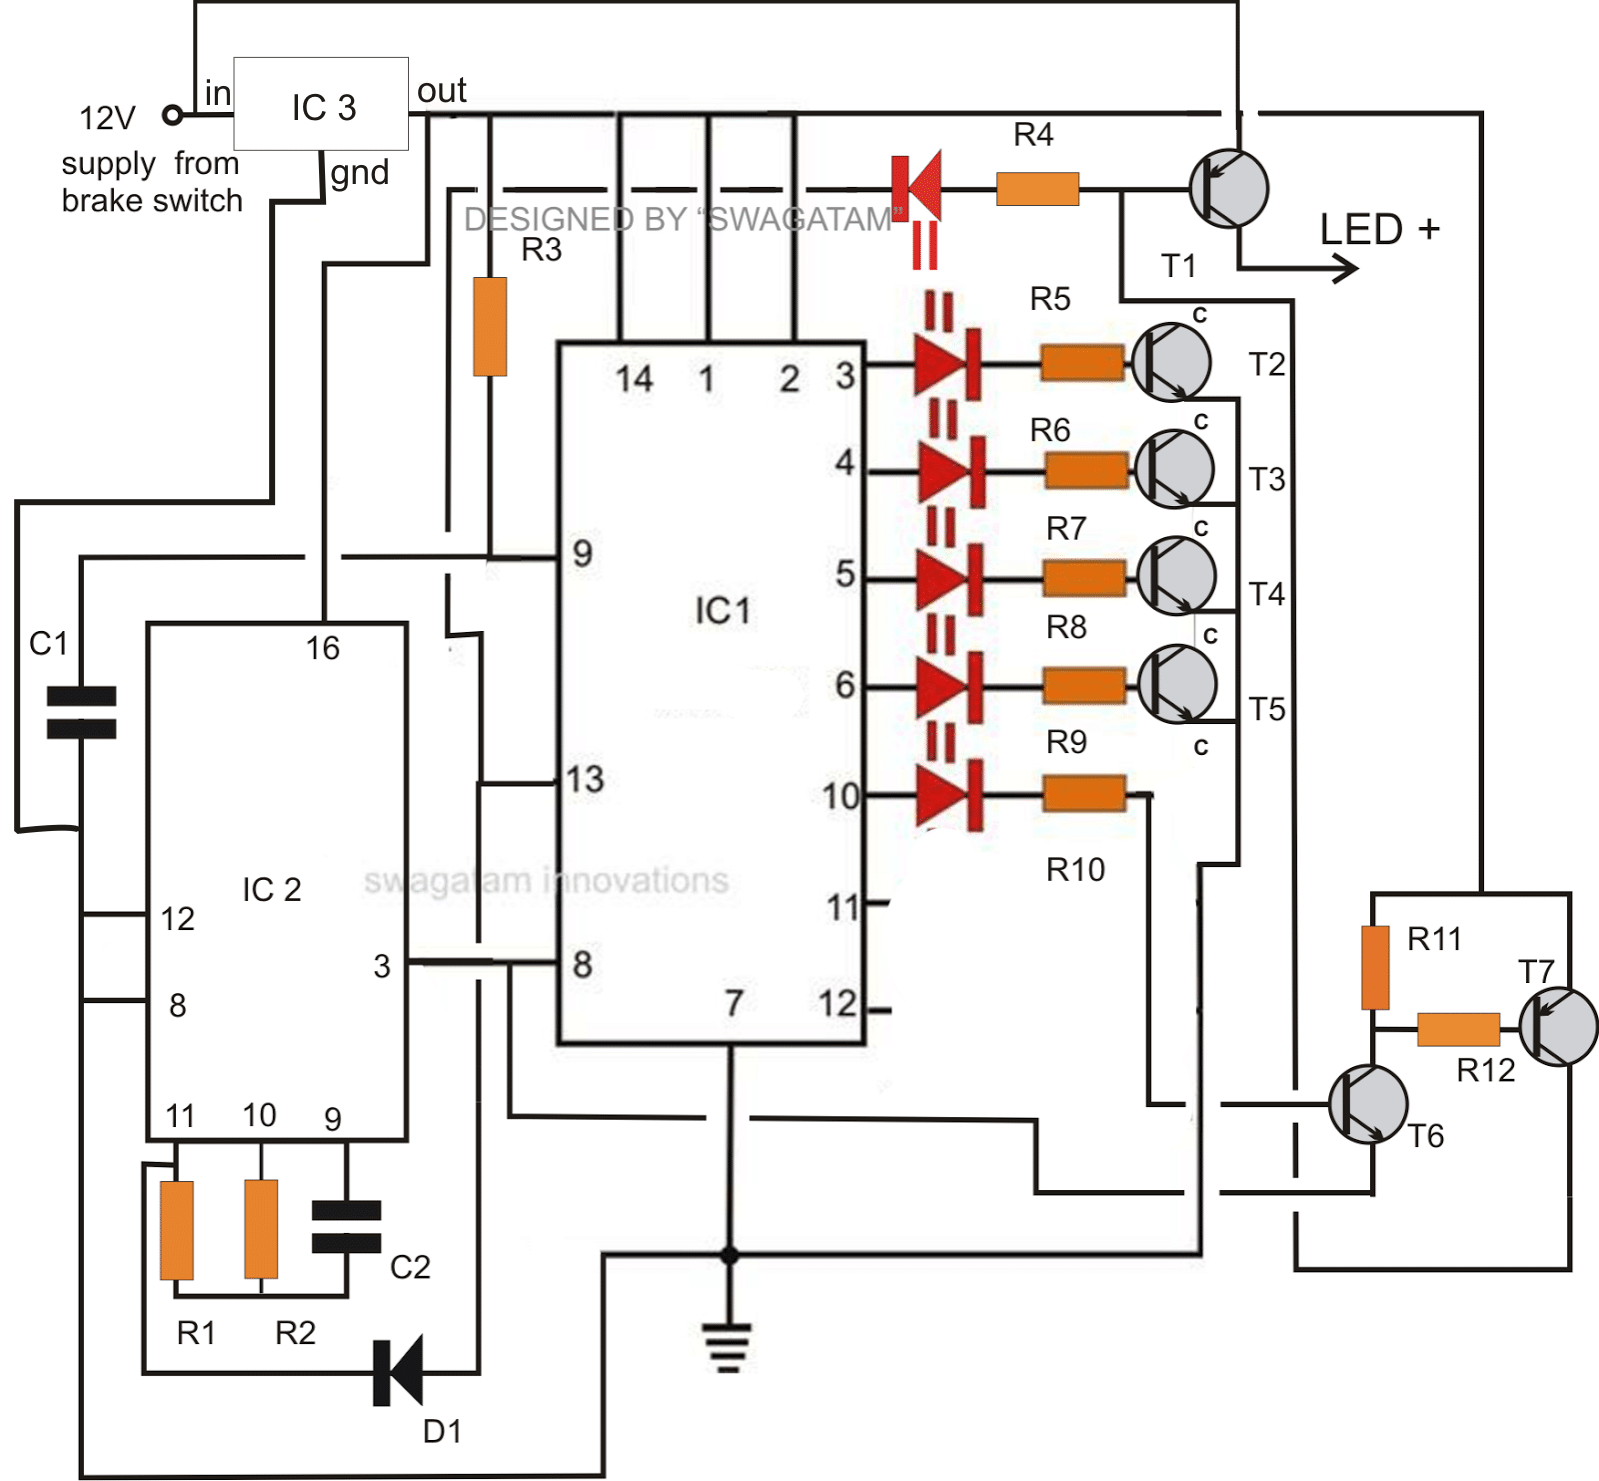 cdi ignition schematic electronic 12v dc capacitive discharge ignition  cdi  circuits  12v dc capacitive discharge ignition